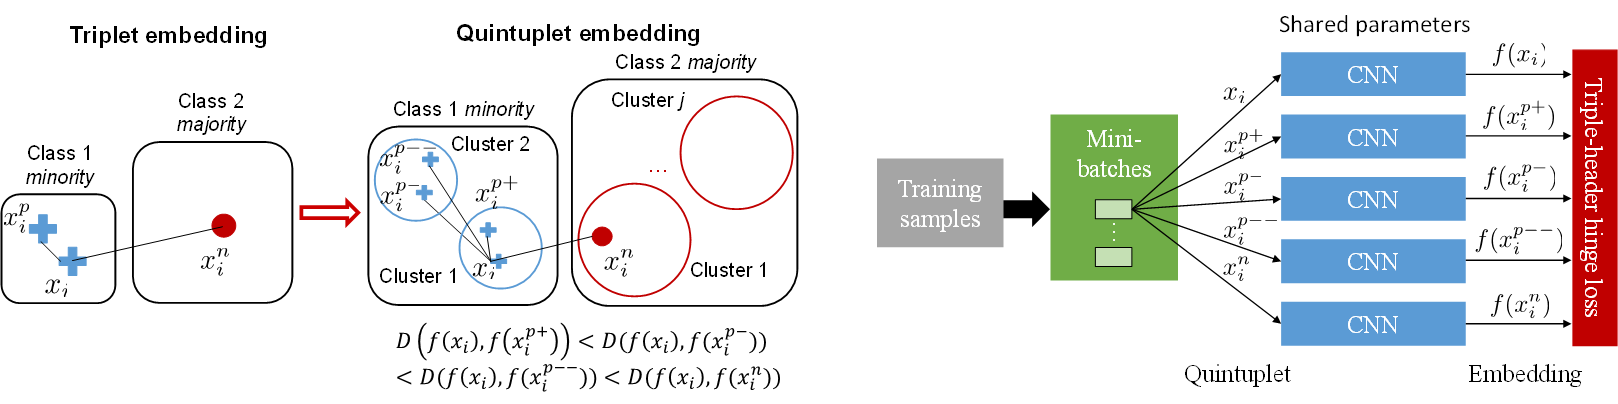 Learning Deep Representation for Imbalanced Classification